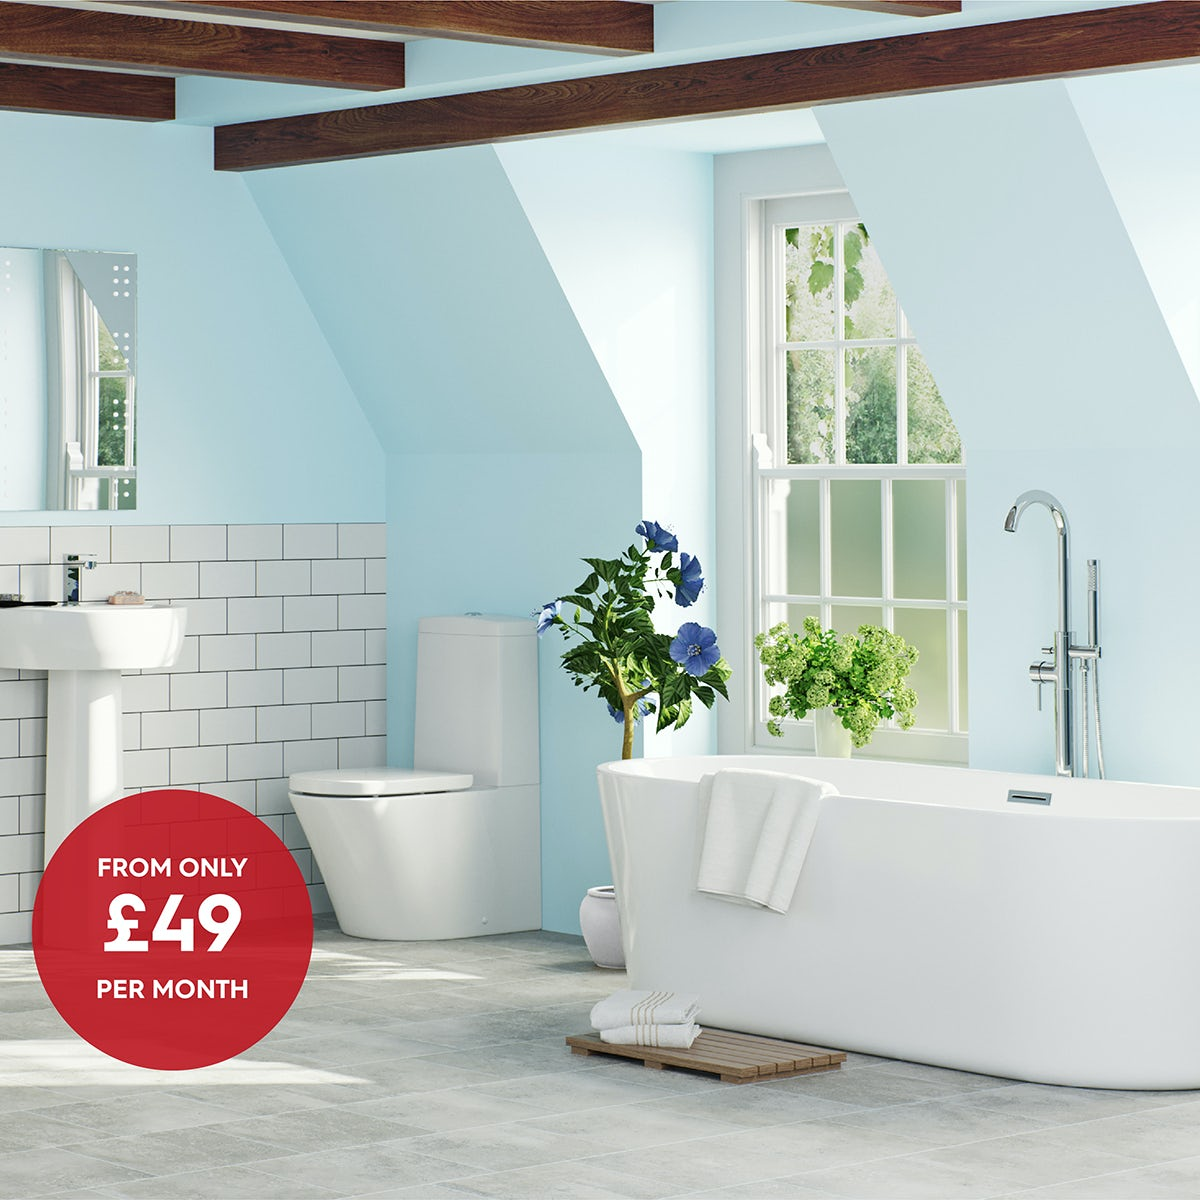 Mode Tate complete bathroom suite with Arte freestanding bath and taps